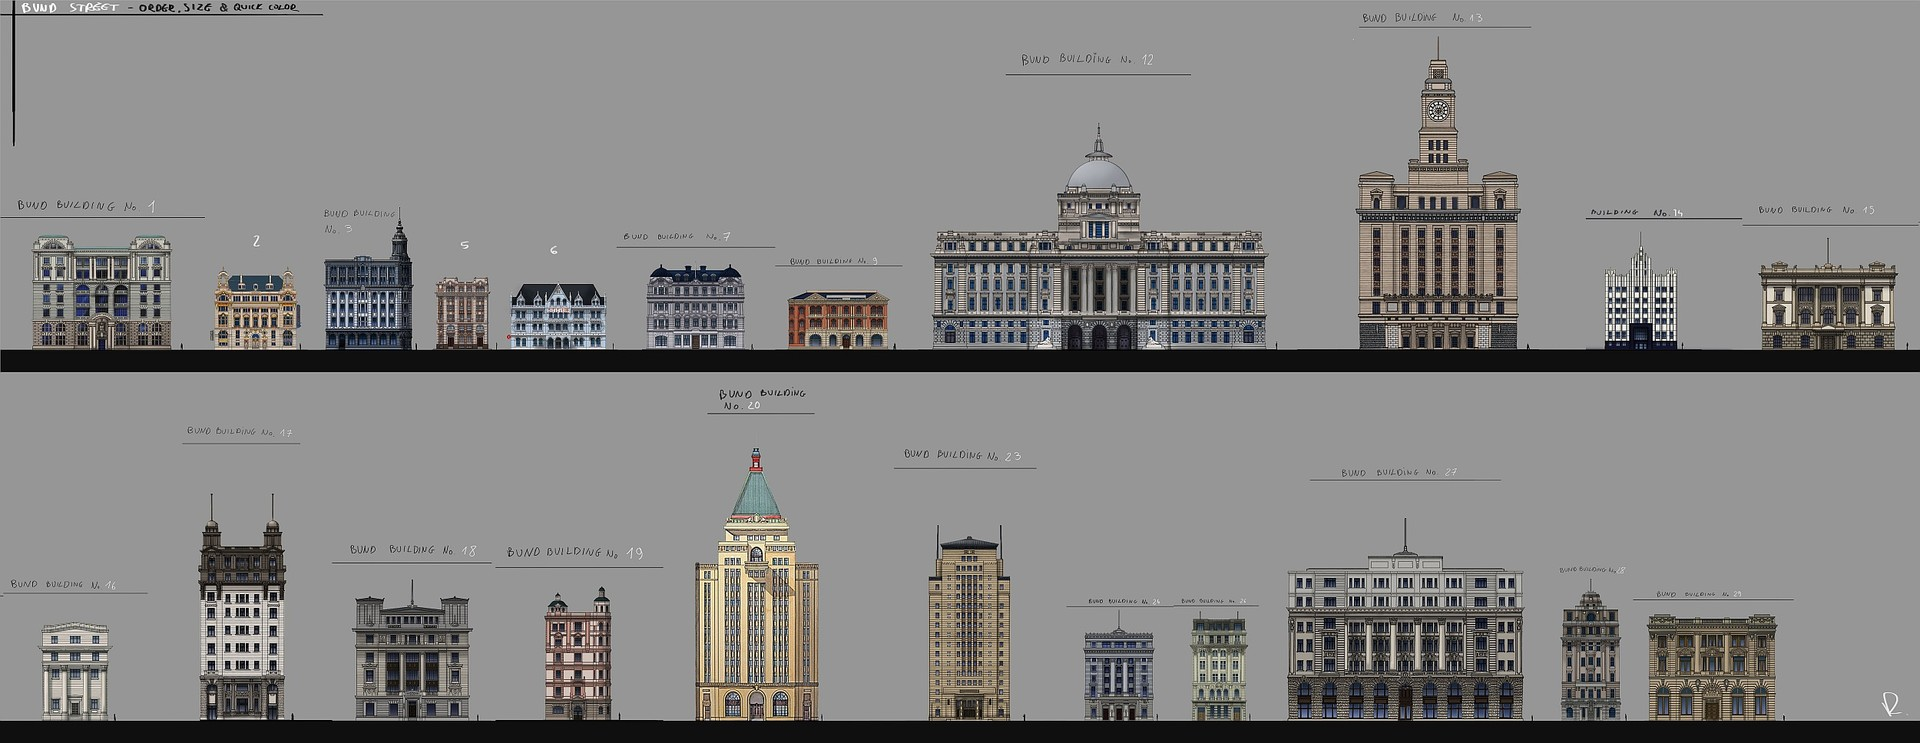 building order and facades